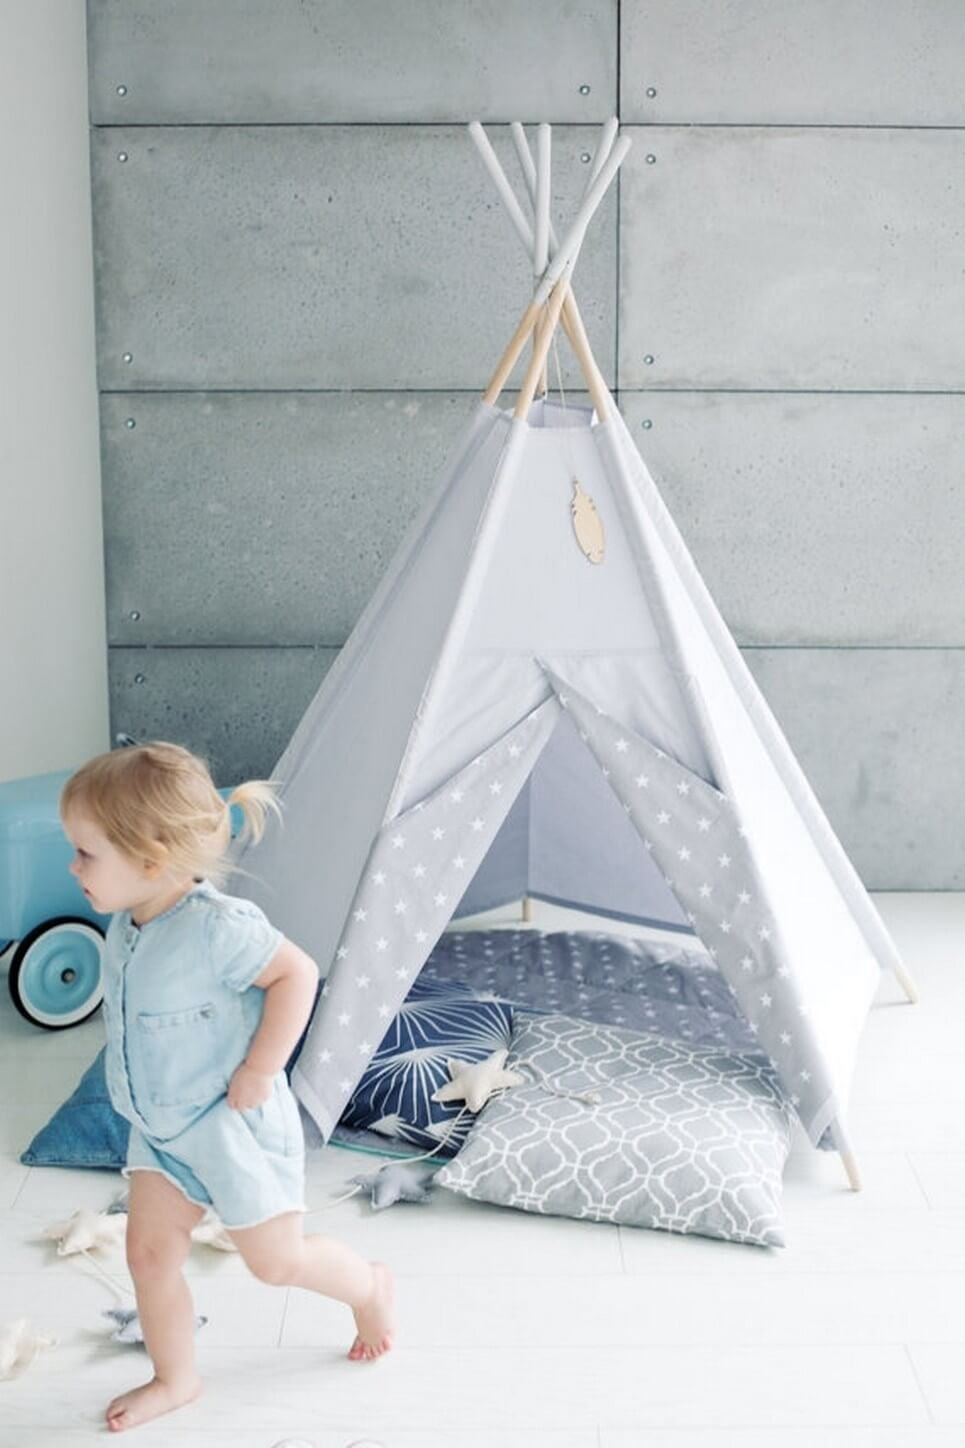 GREY SKY CHILDREN'S TEEPEE TENT | Decorative Kids' Play ...